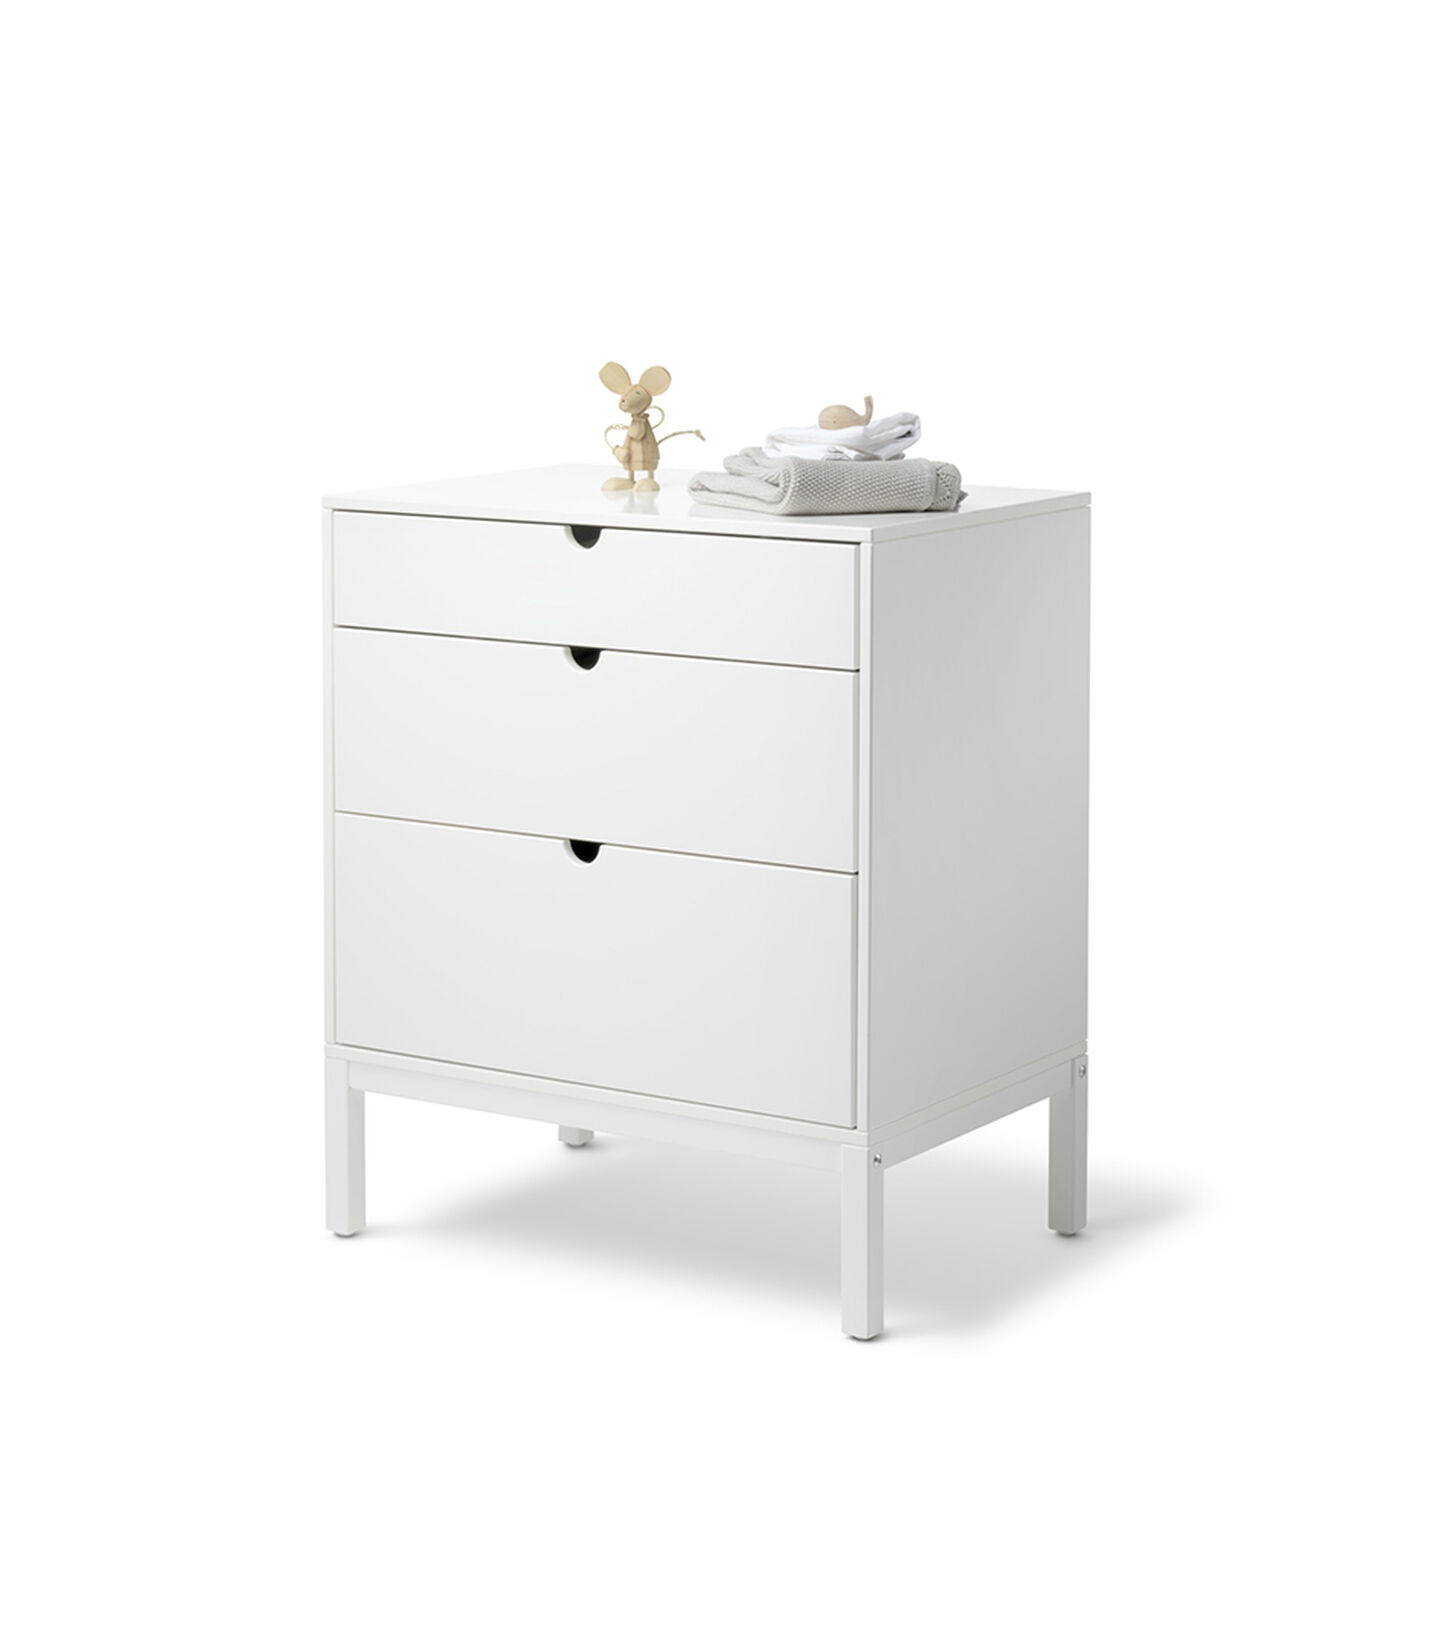 Stokke® Home™ Dresser, White. With Changer.